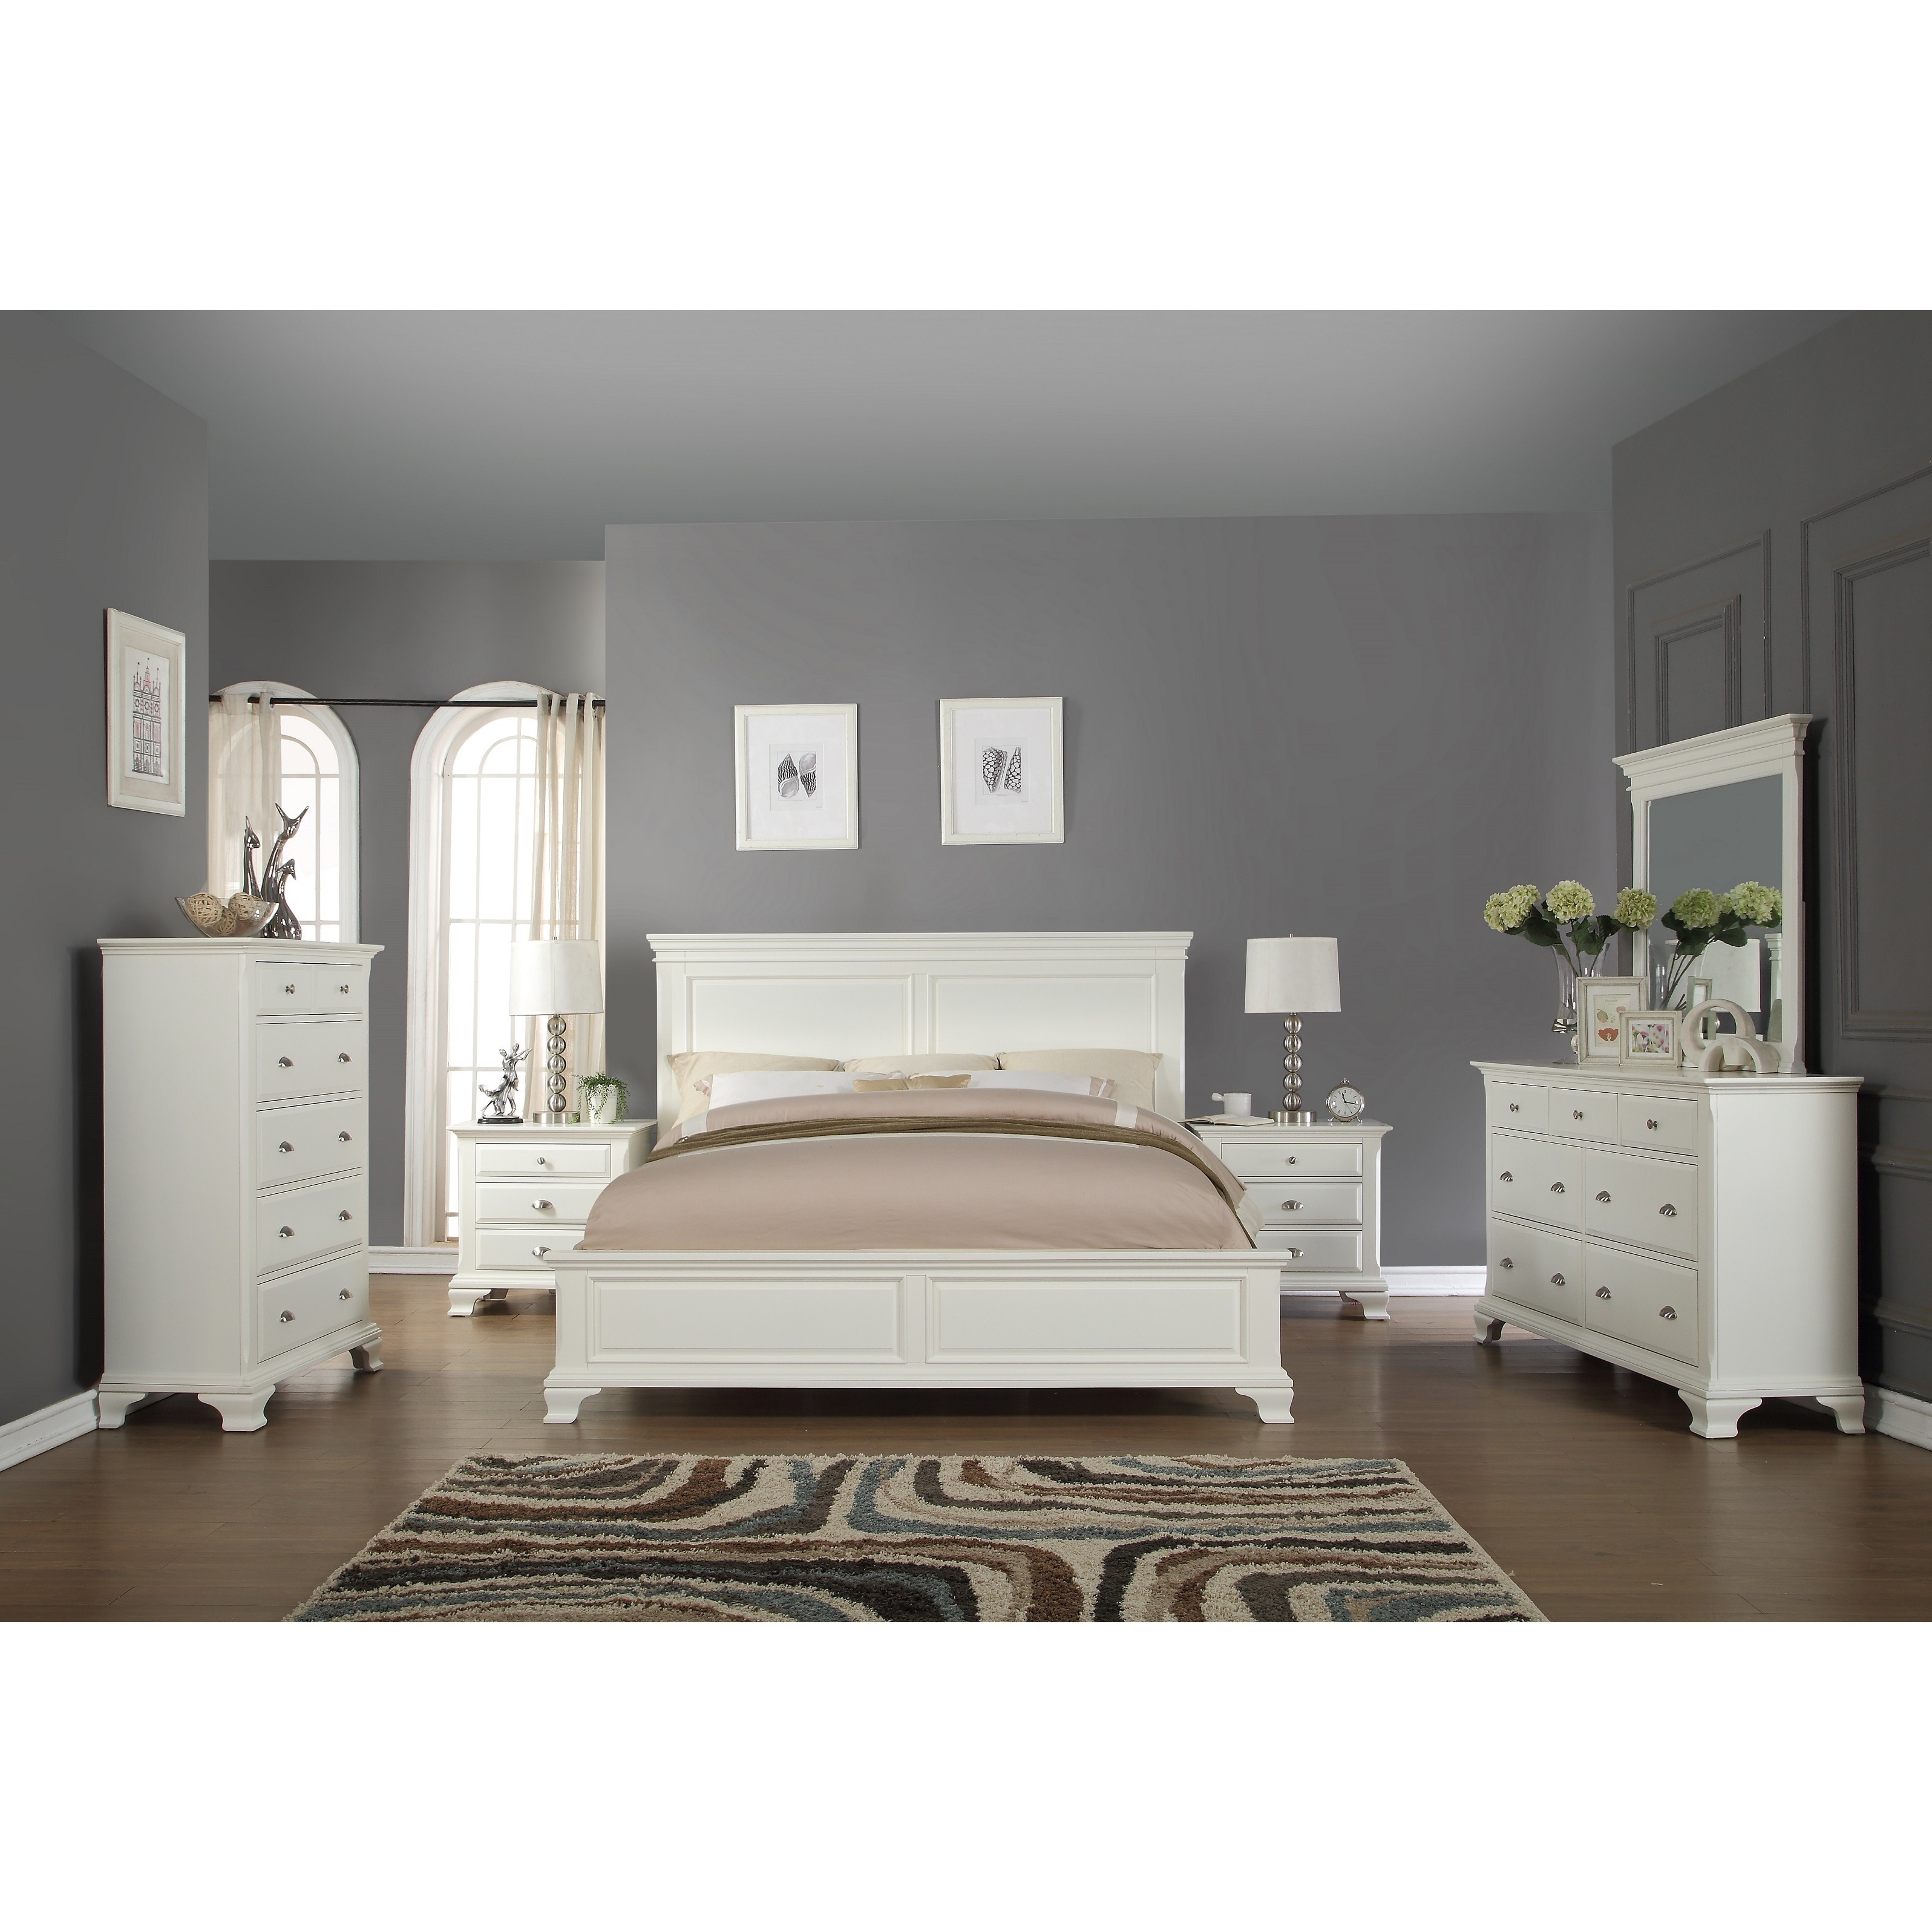 Laveno 012 White Wood Bedroom Furniture Set Includes King Bed Dresser Mirror 2 Night Stands And Chest